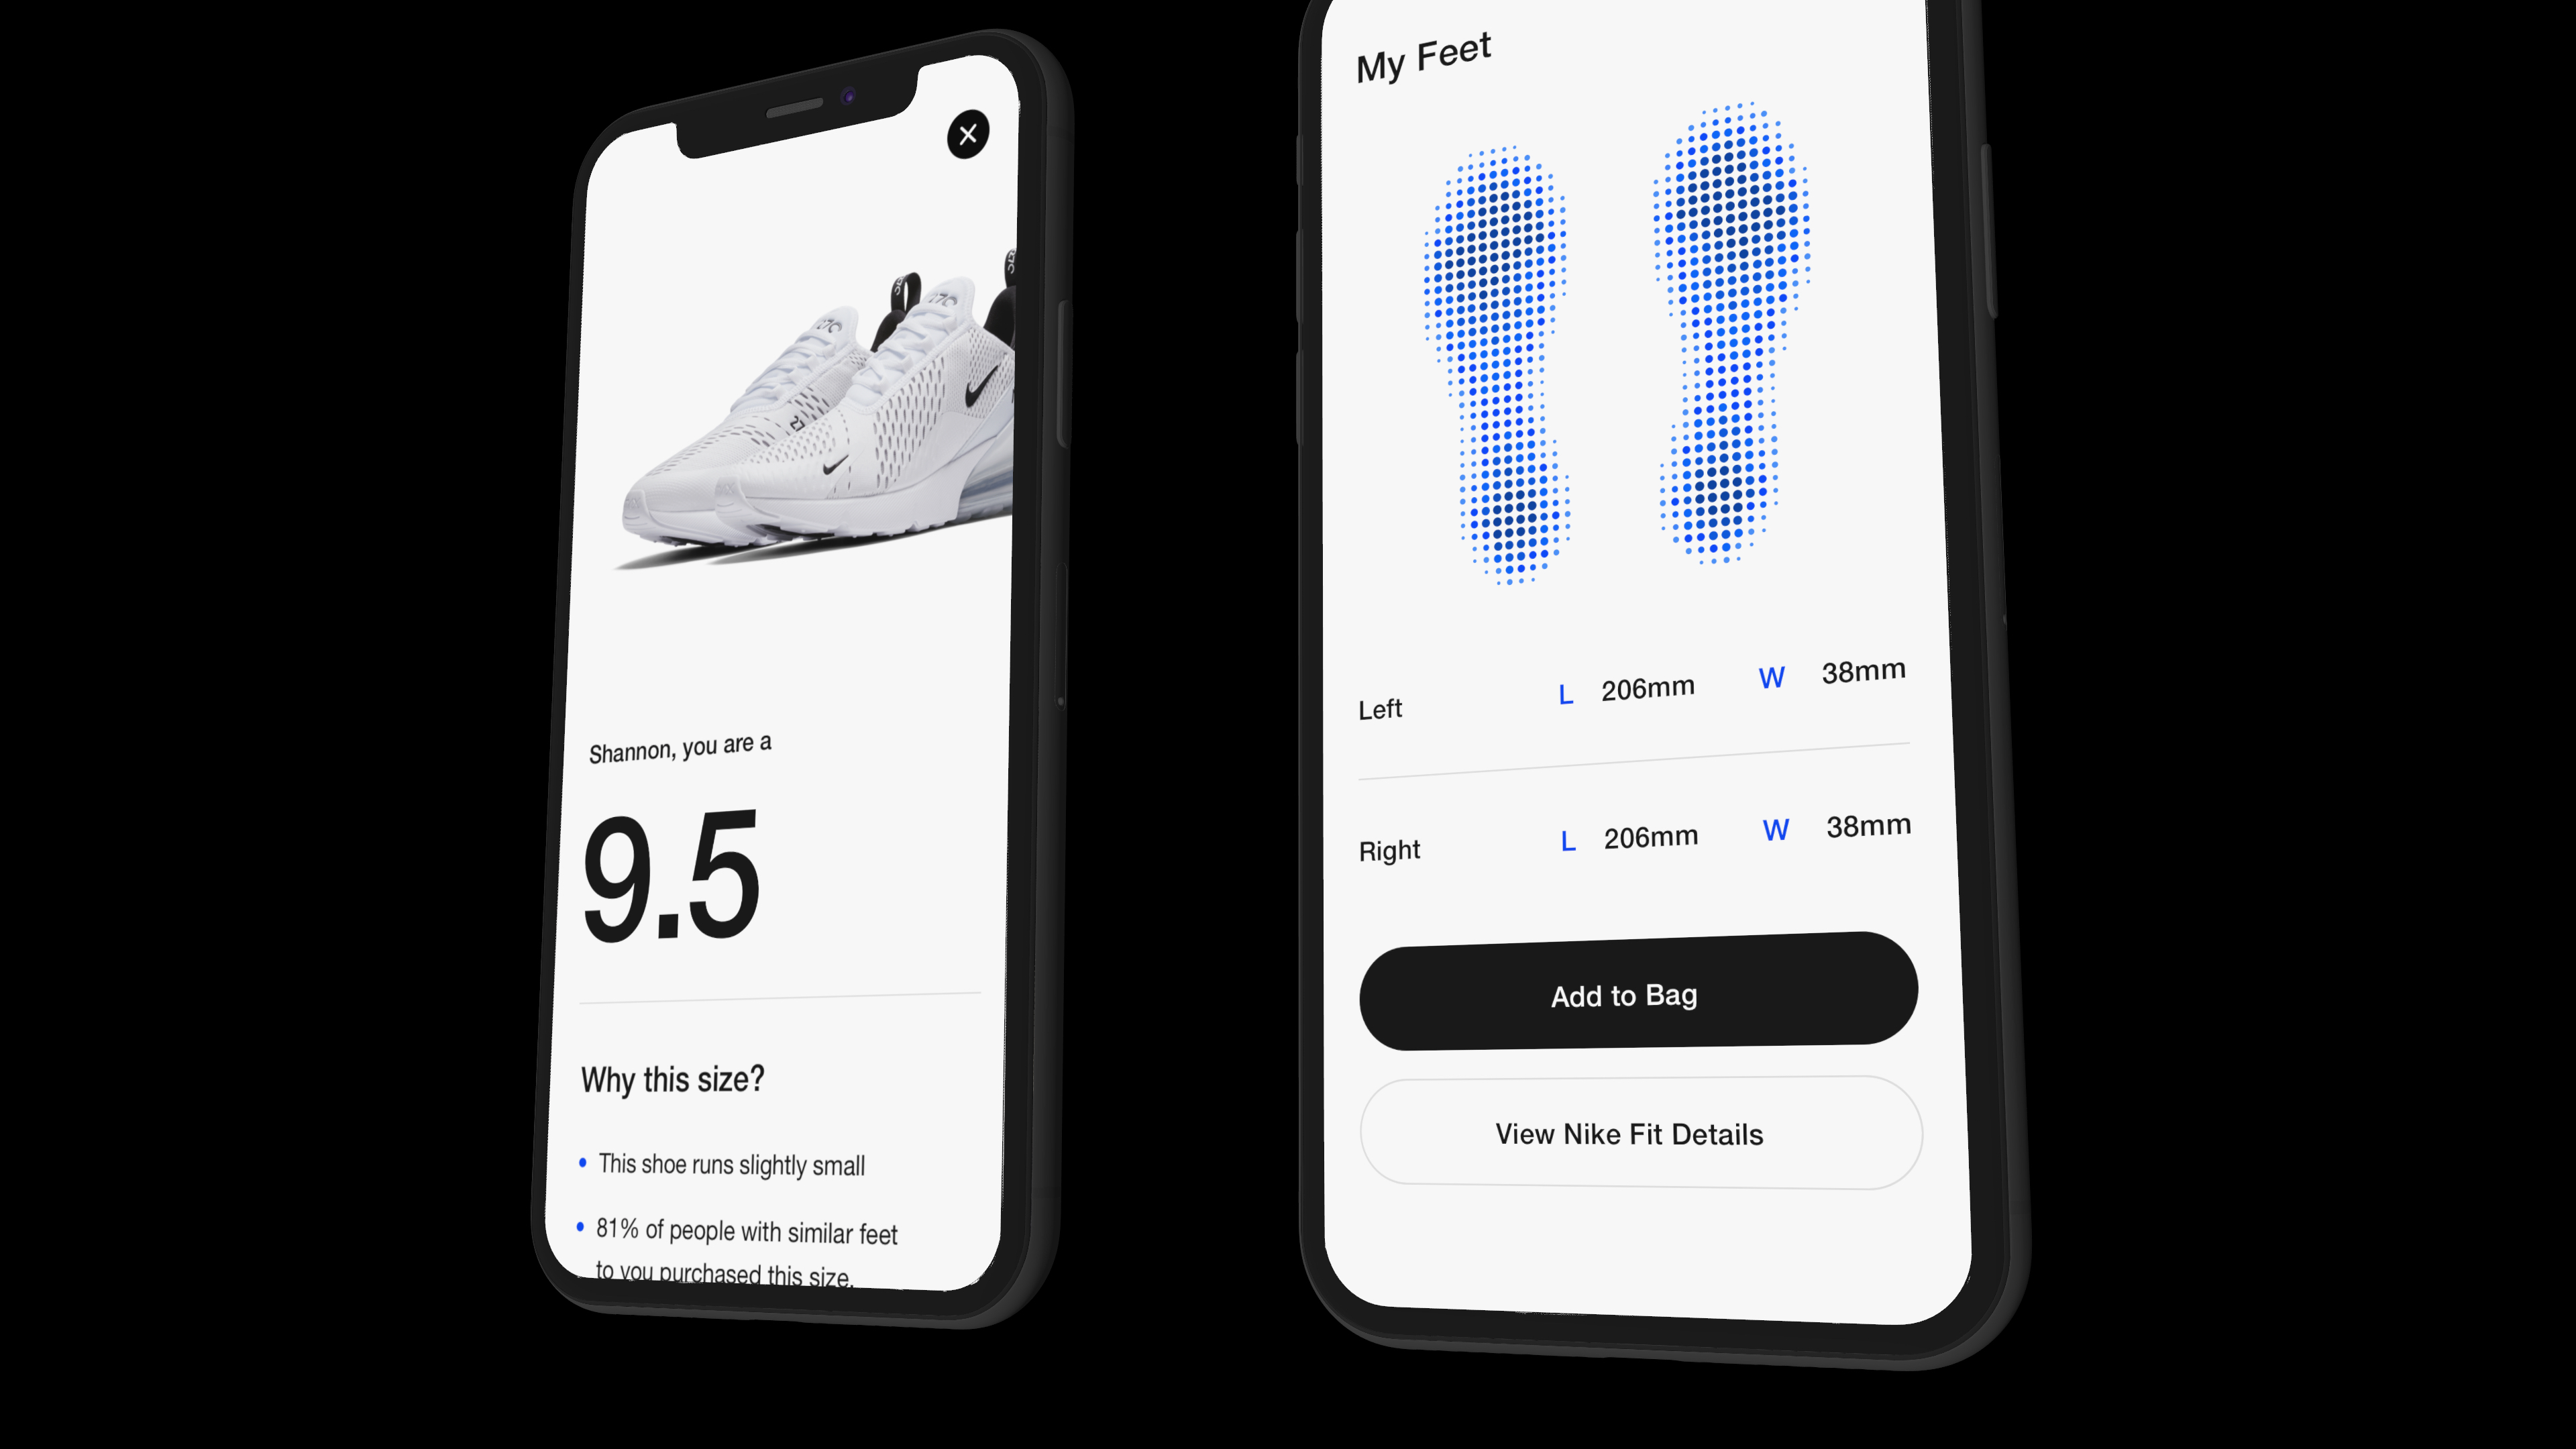 With new Fit technology, Nike calls itself a tech company